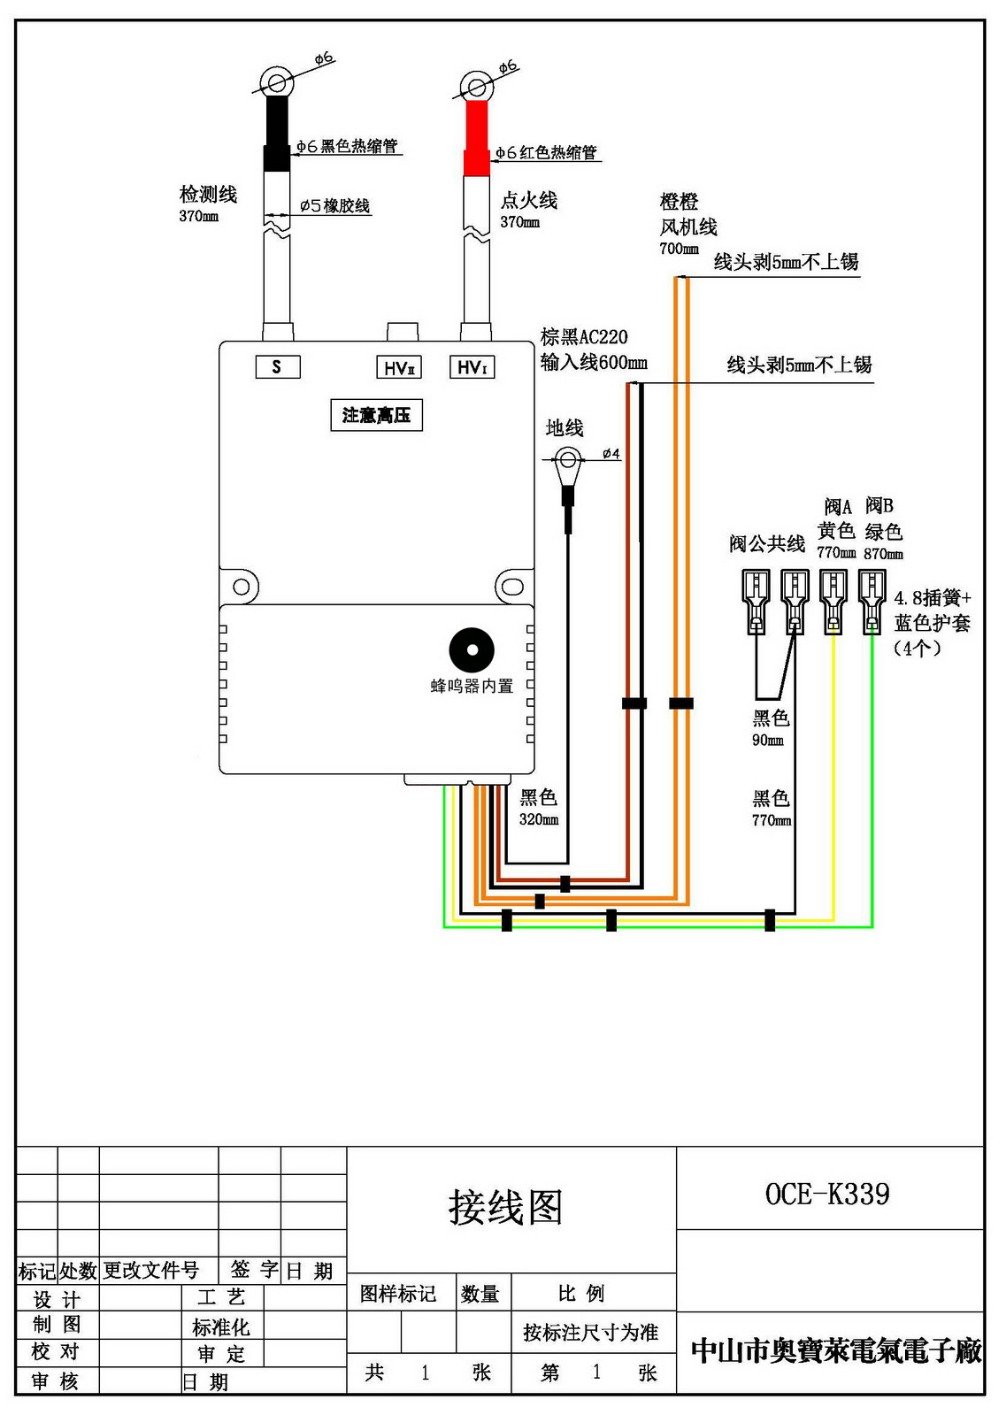 Obl Wiring Diagrams on series and parallel circuits diagrams, troubleshooting diagrams, motor diagrams, smart car diagrams, sincgars radio configurations diagrams, internet of things diagrams, gmc fuse box diagrams, switch diagrams, engine diagrams, pinout diagrams, transformer diagrams, led circuit diagrams, honda motorcycle repair diagrams, hvac diagrams, electronic circuit diagrams, electrical diagrams, battery diagrams, lighting diagrams, friendship bracelet diagrams,